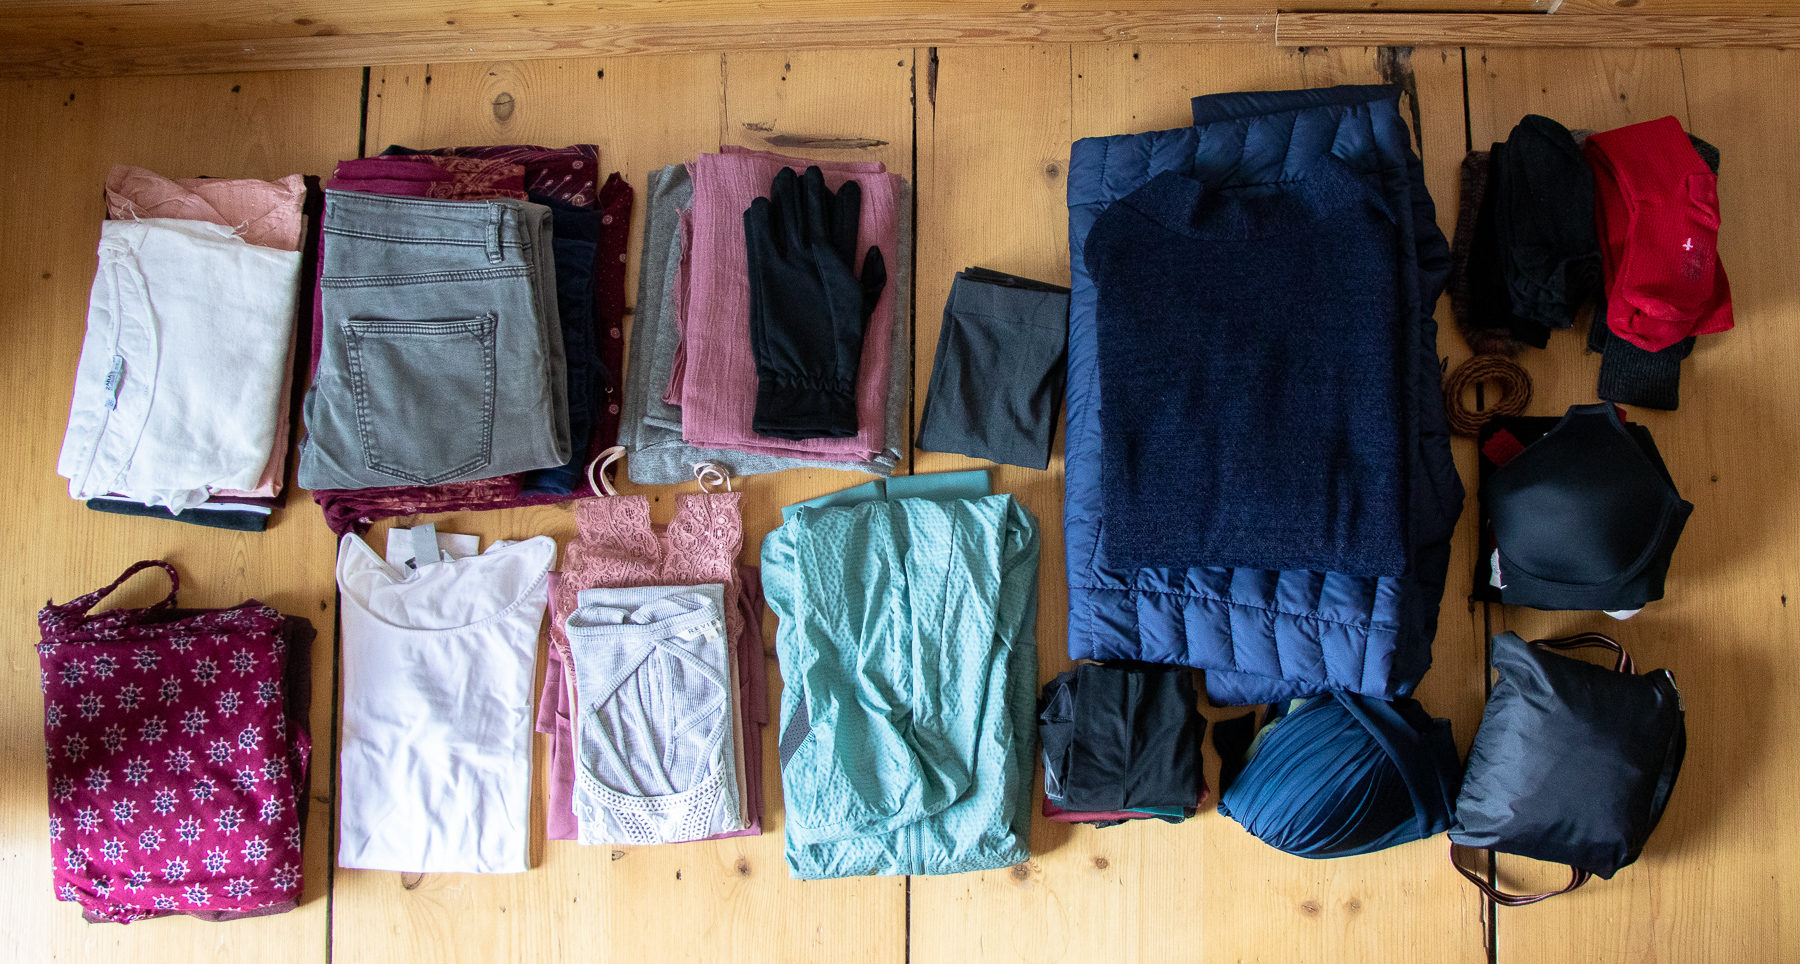 Clothes for one year and for all seasons.